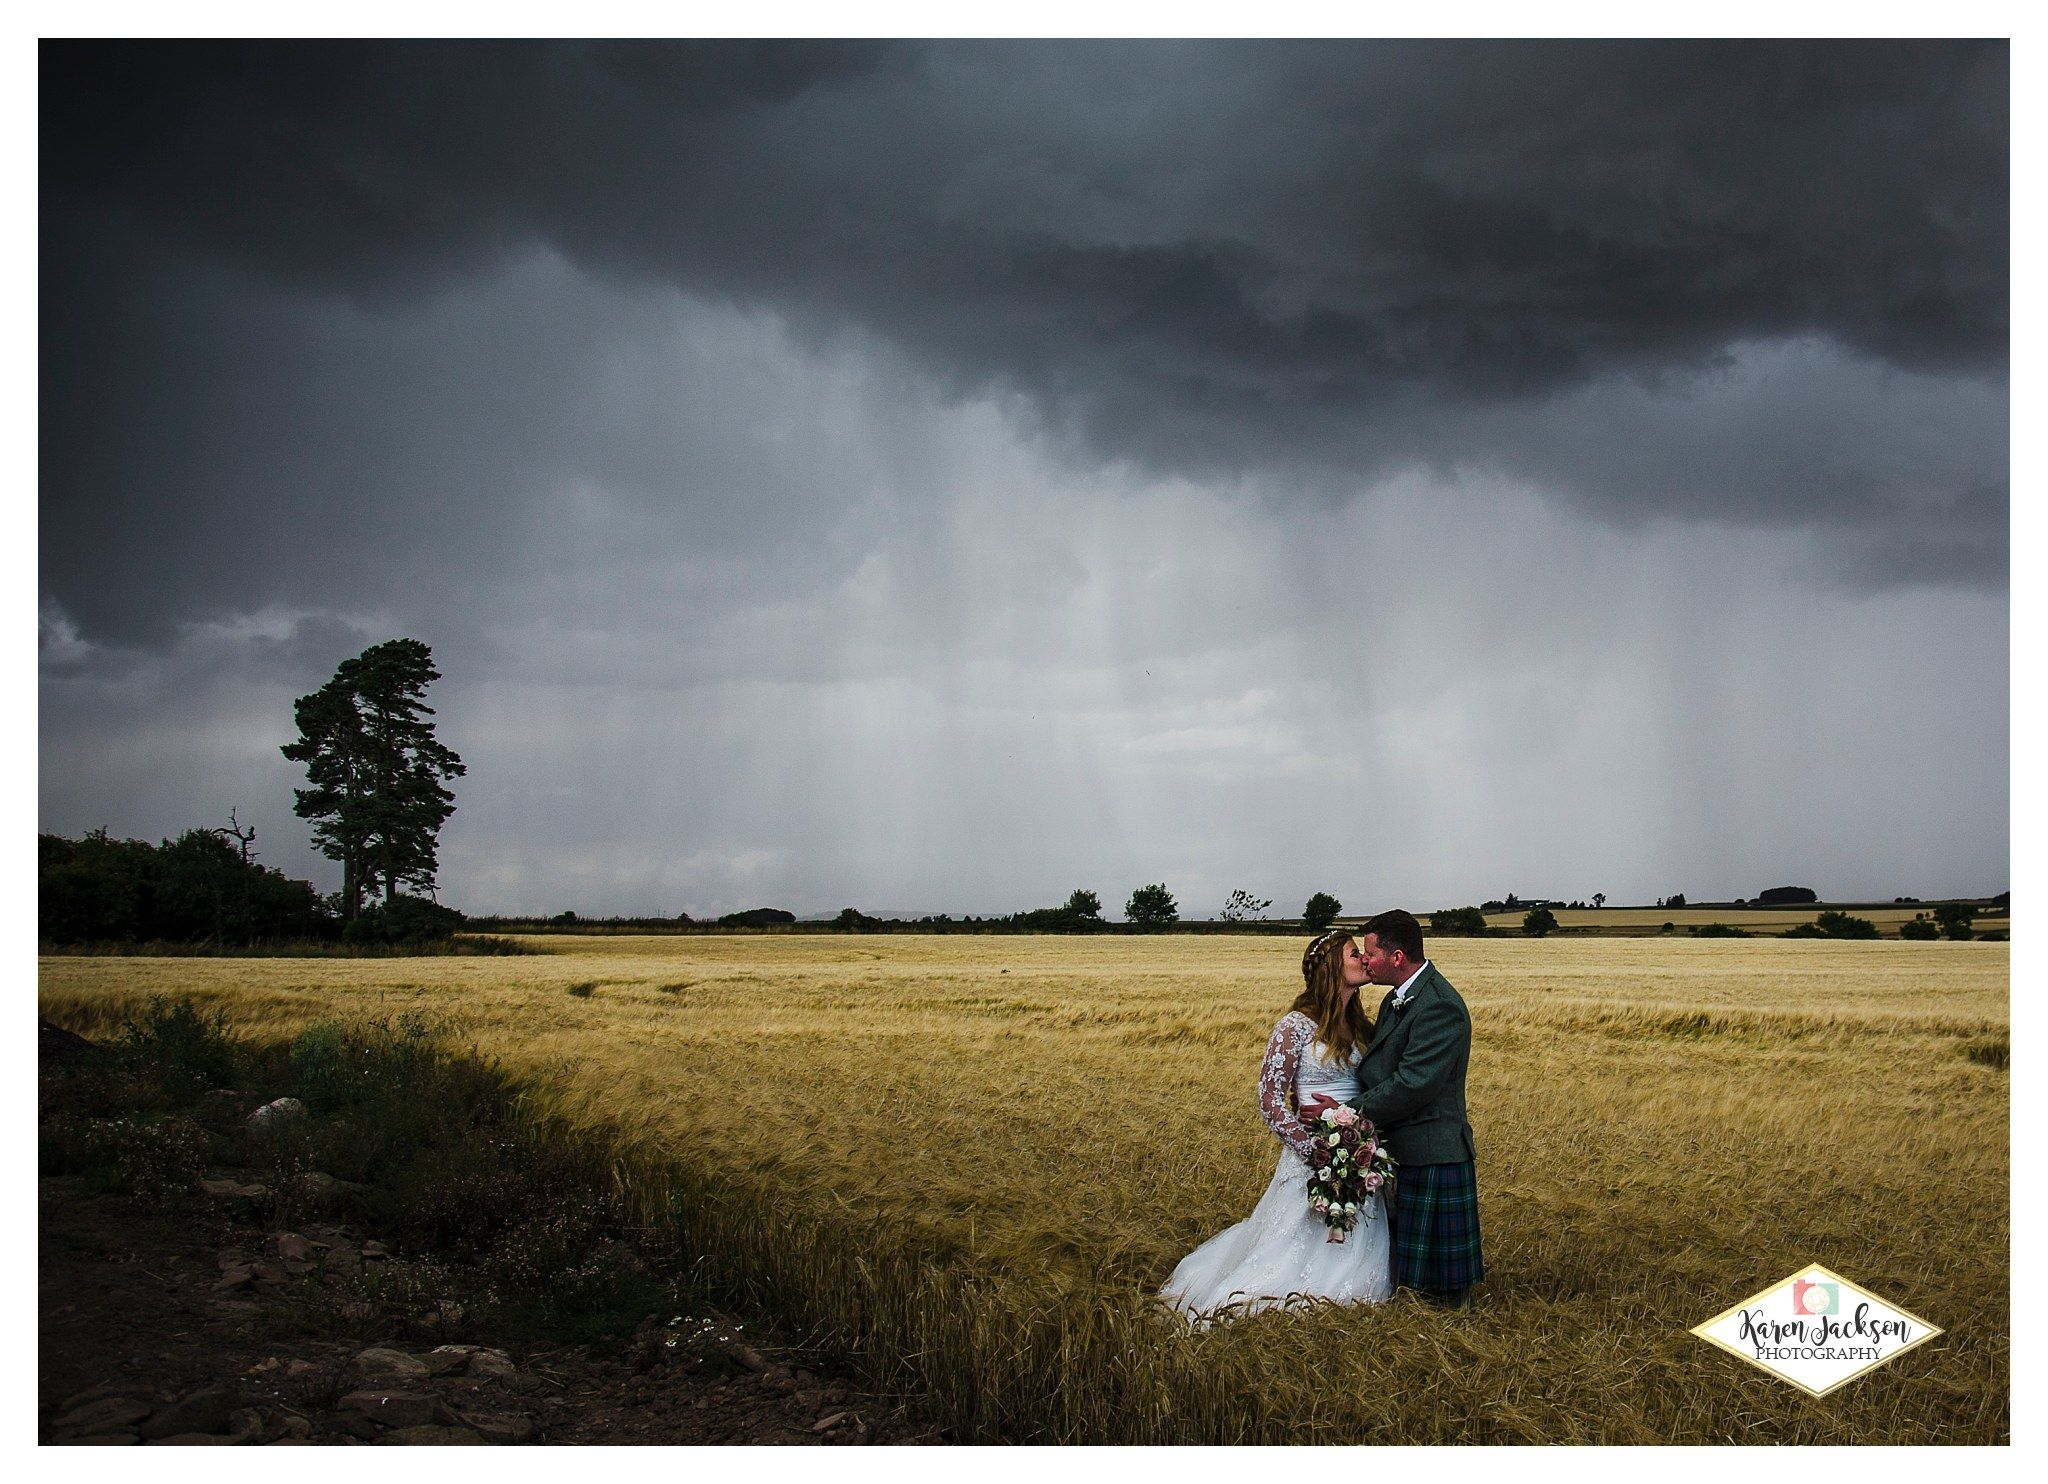 Scottish wedding photography rainy fields angus